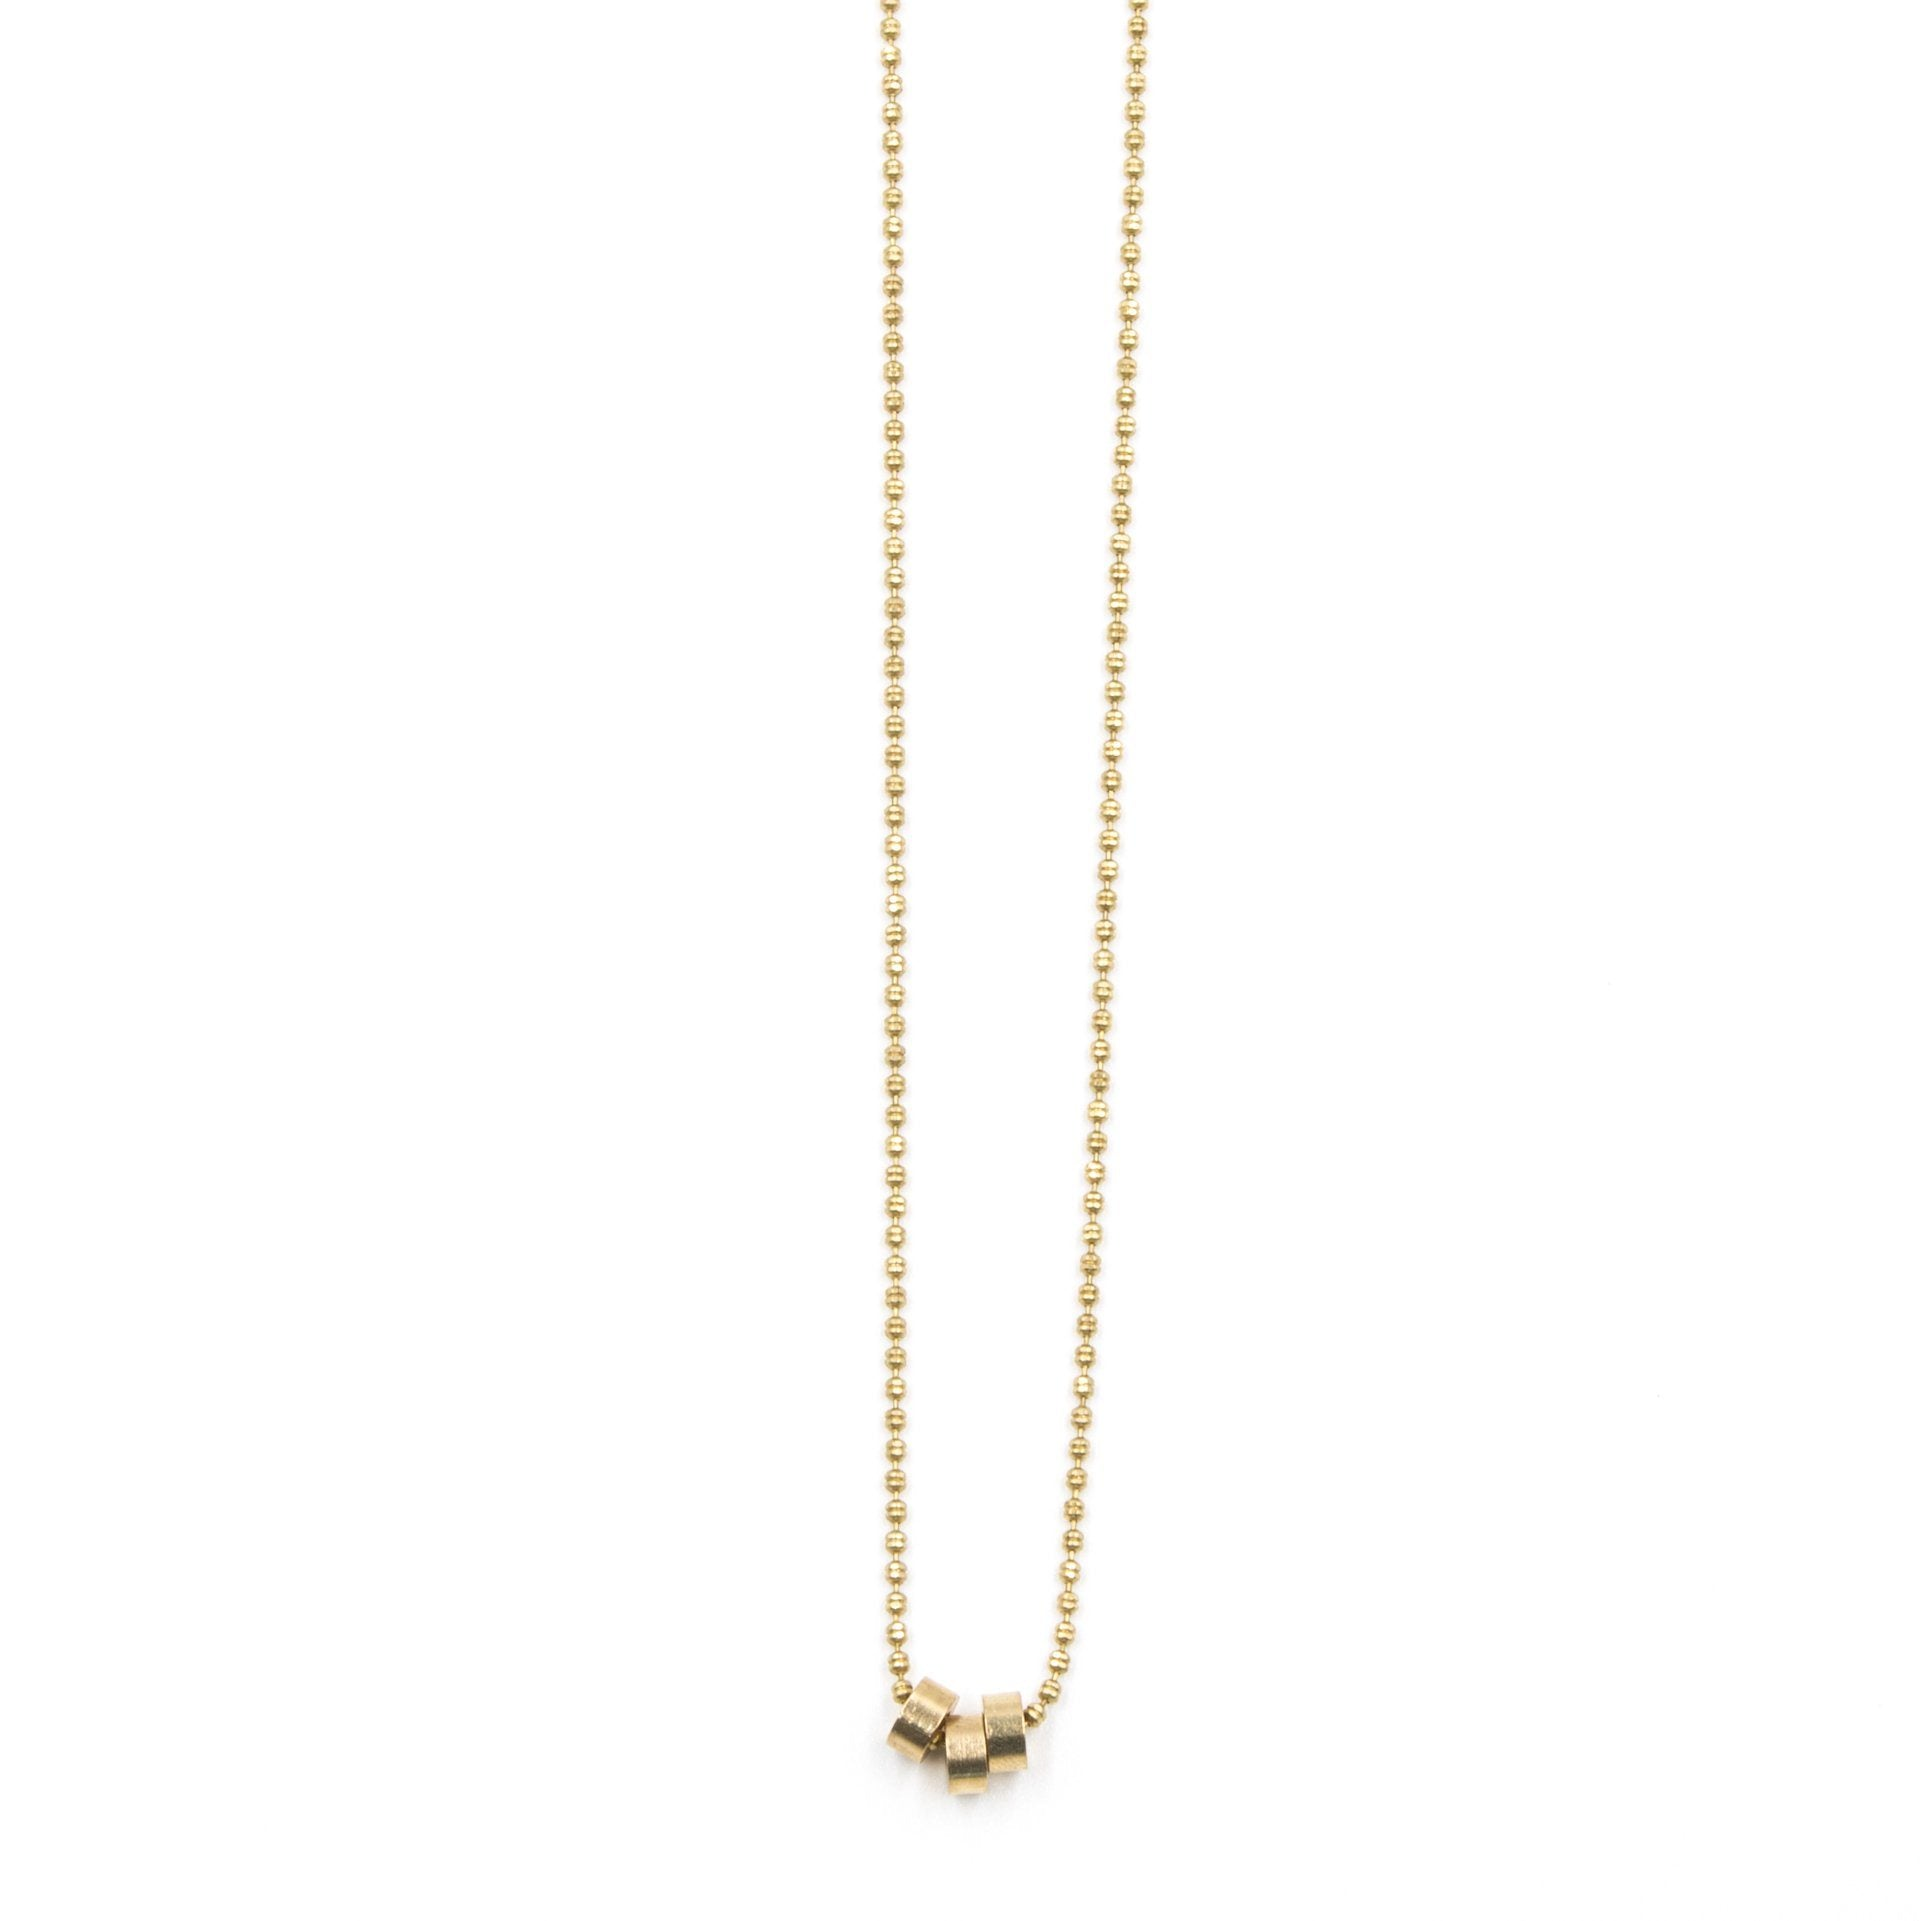 Dainty Triple Disc Necklace - Arlo and Arrows